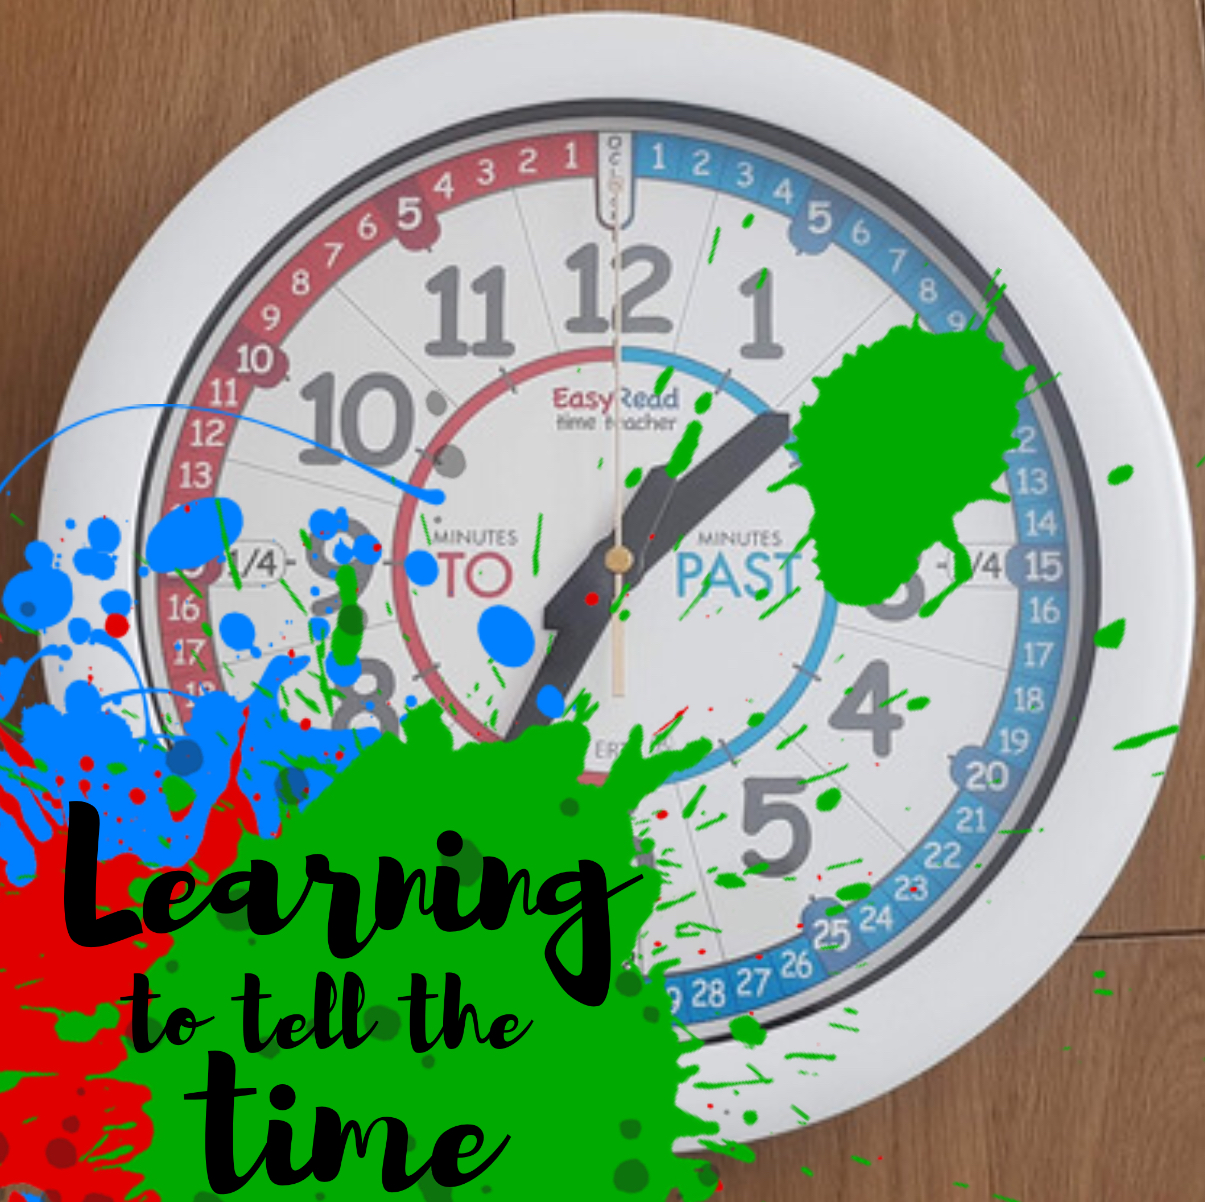 Learning to tell the time easy read time teacher wall clock raw childhood